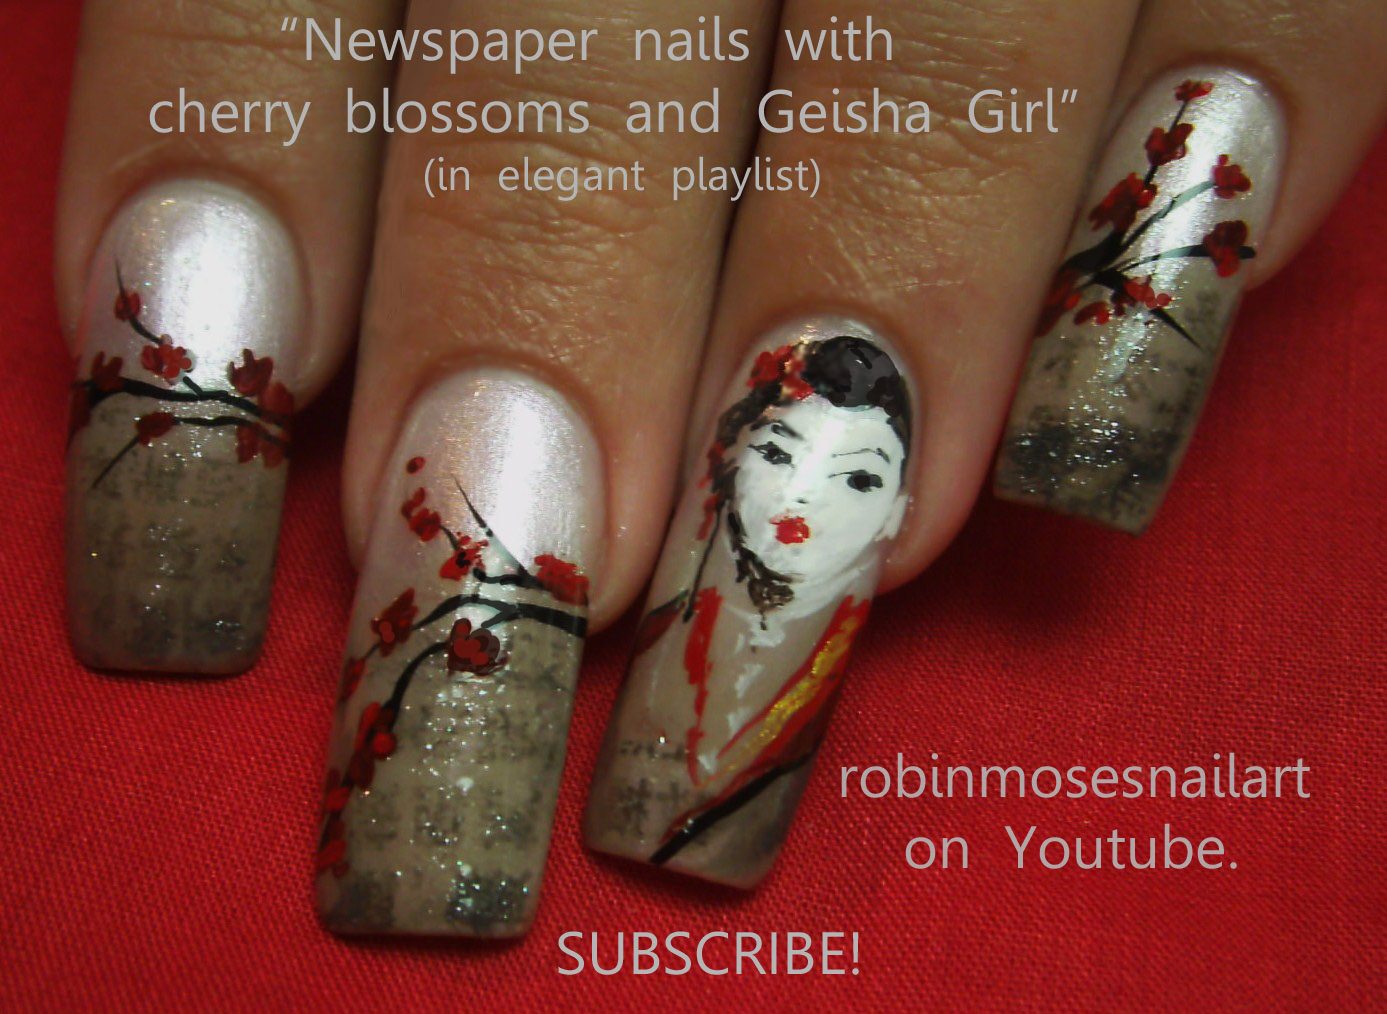 geisha nails, newspaper nails, newspaper nails with cherry blossoms ...